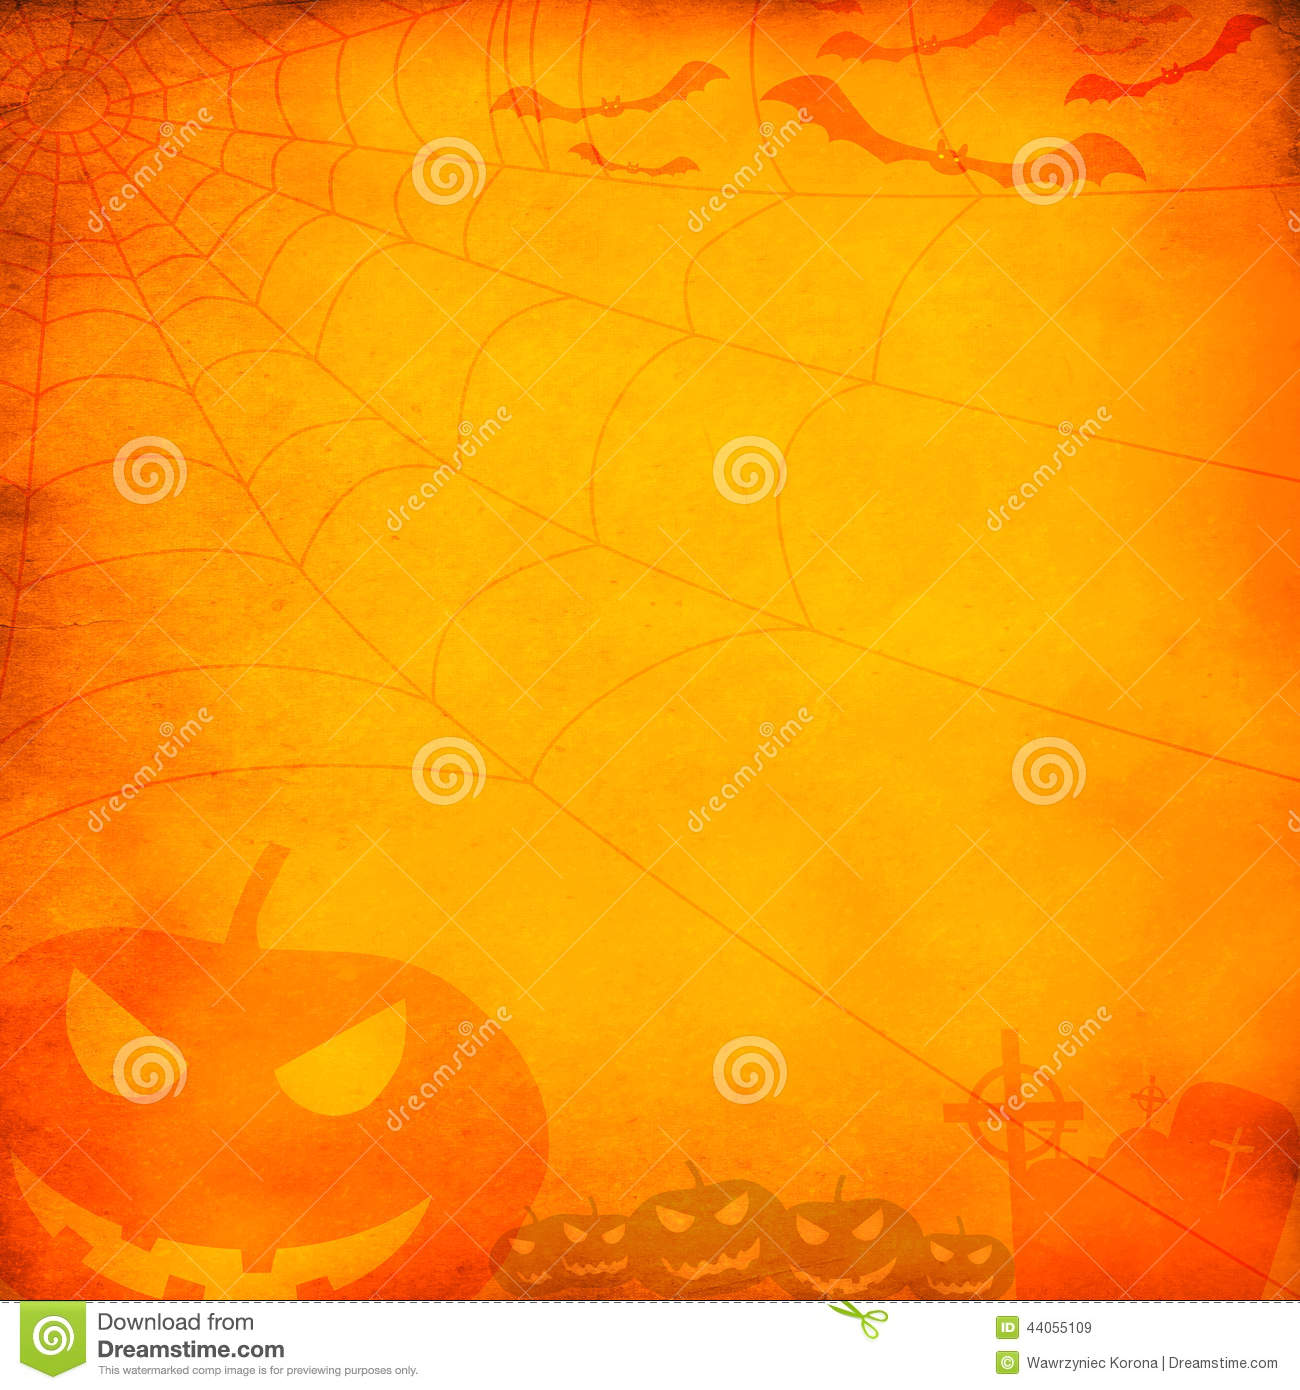 grunge orange halloween background stock photo image